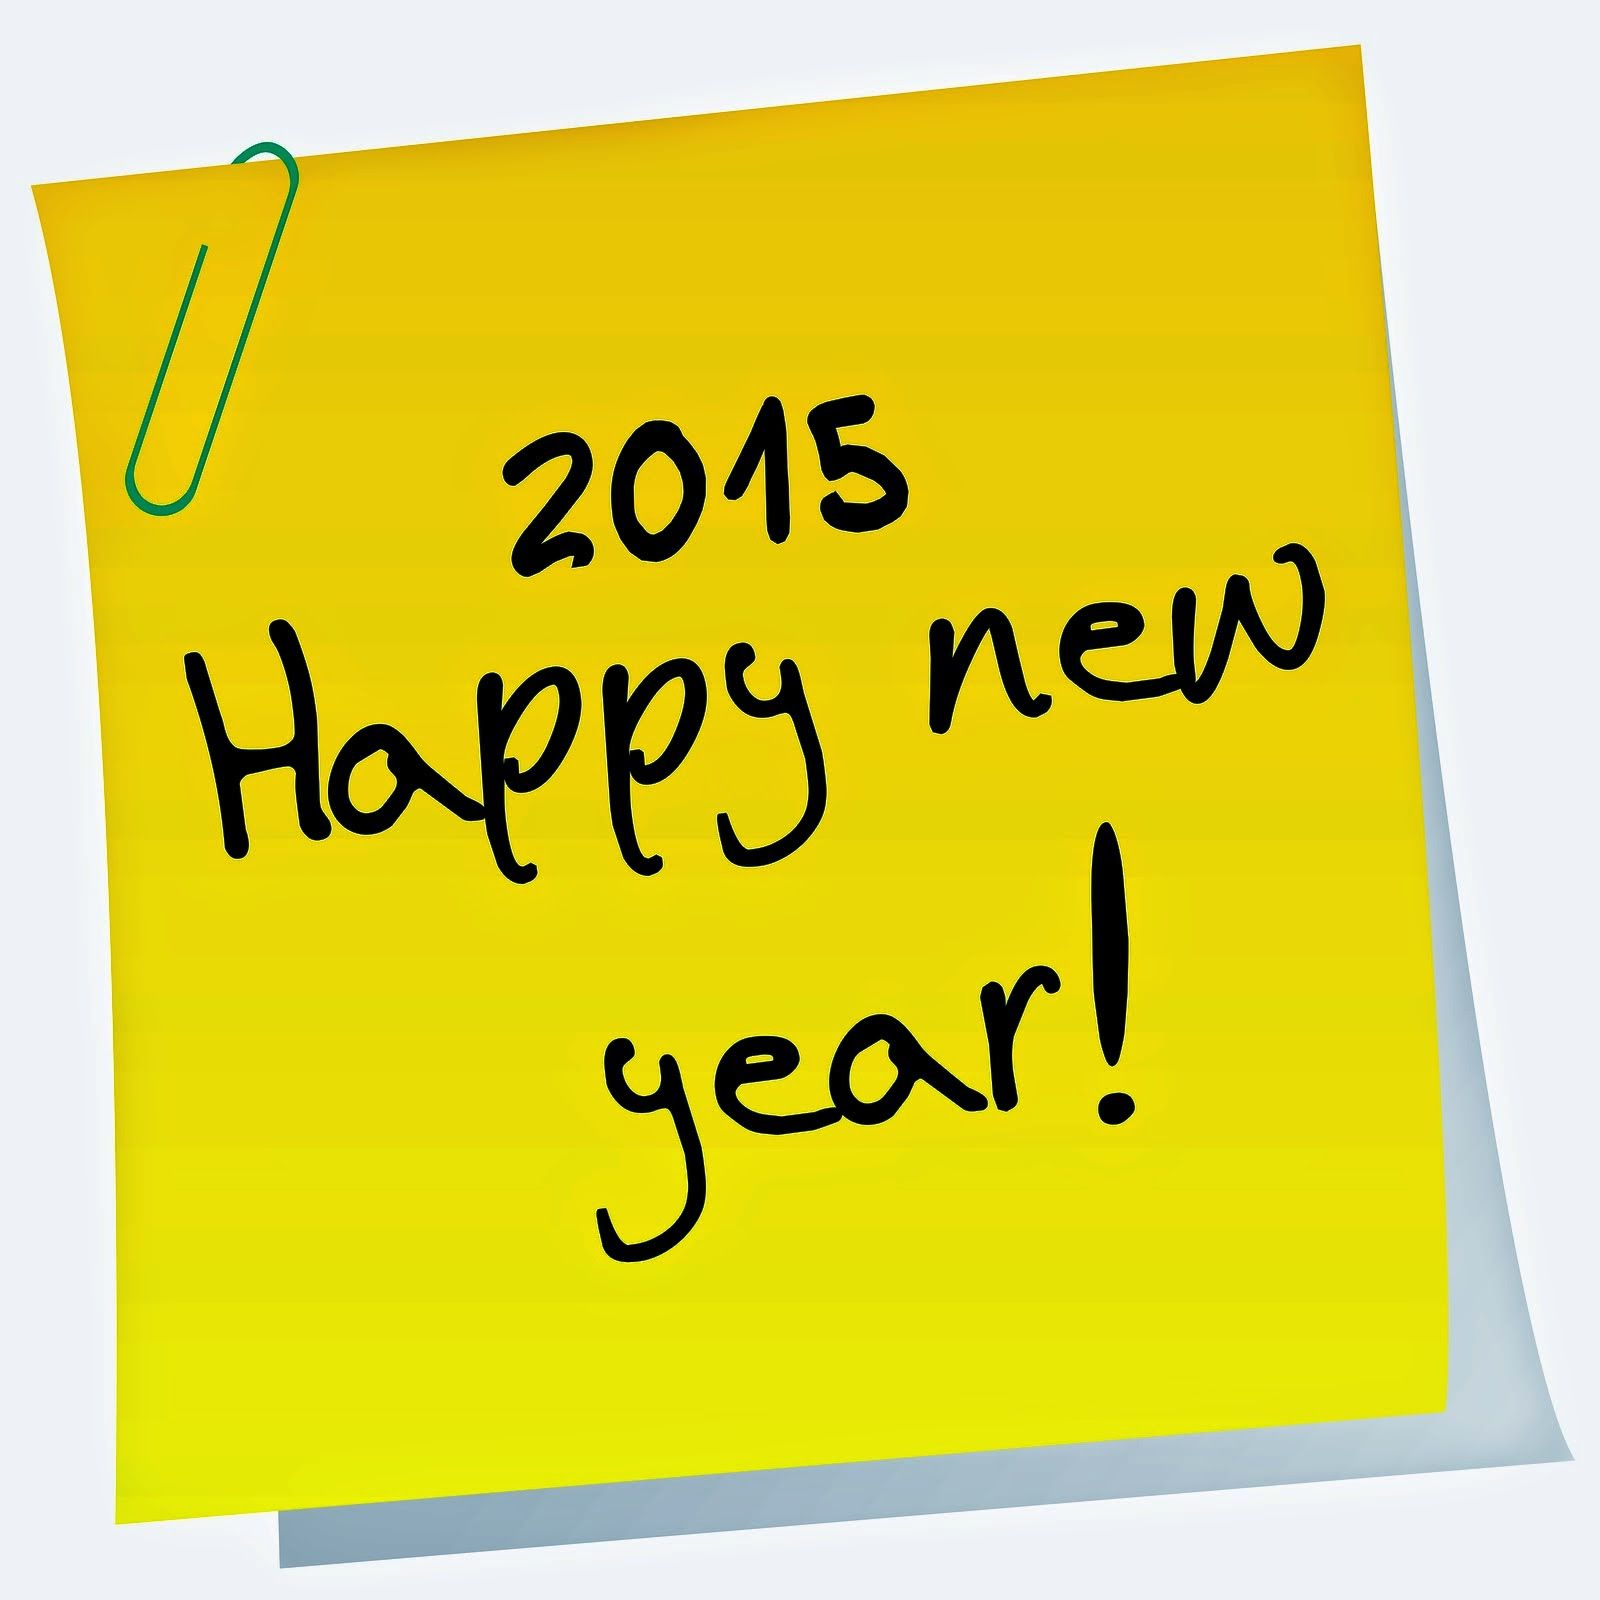 Happy new year 2015 whatspp status new year 2015 whatsapp wishes happy new year 2015 whatspp status new year 2015 whatsapp wishes kristyandbryce Images